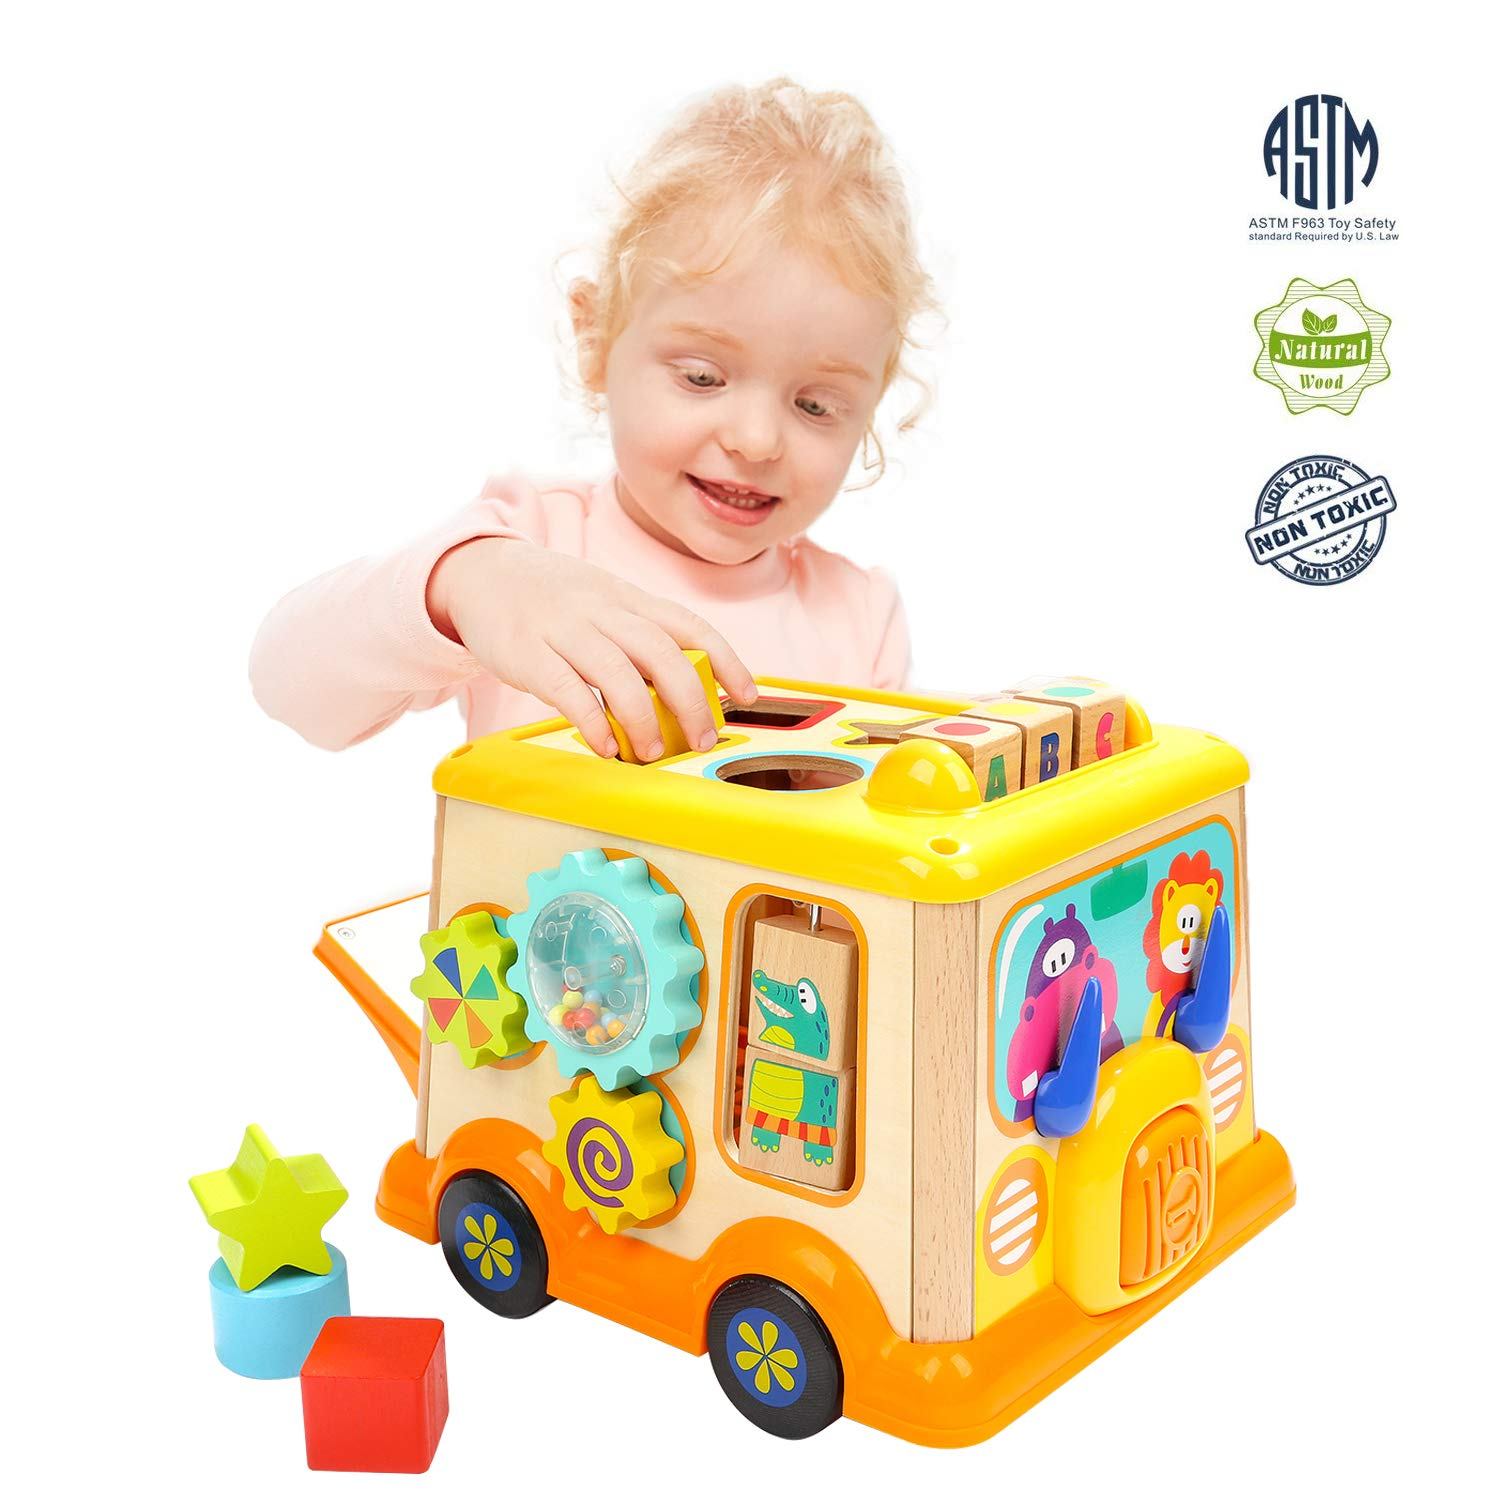 4cf124bb765c Amazon.com  TOP BRIGHT Toys for 1 2 Year Old Boy and Girl Gifts Educational  Baby Learning Activity Cube with Shape Sorter  Toys   Games